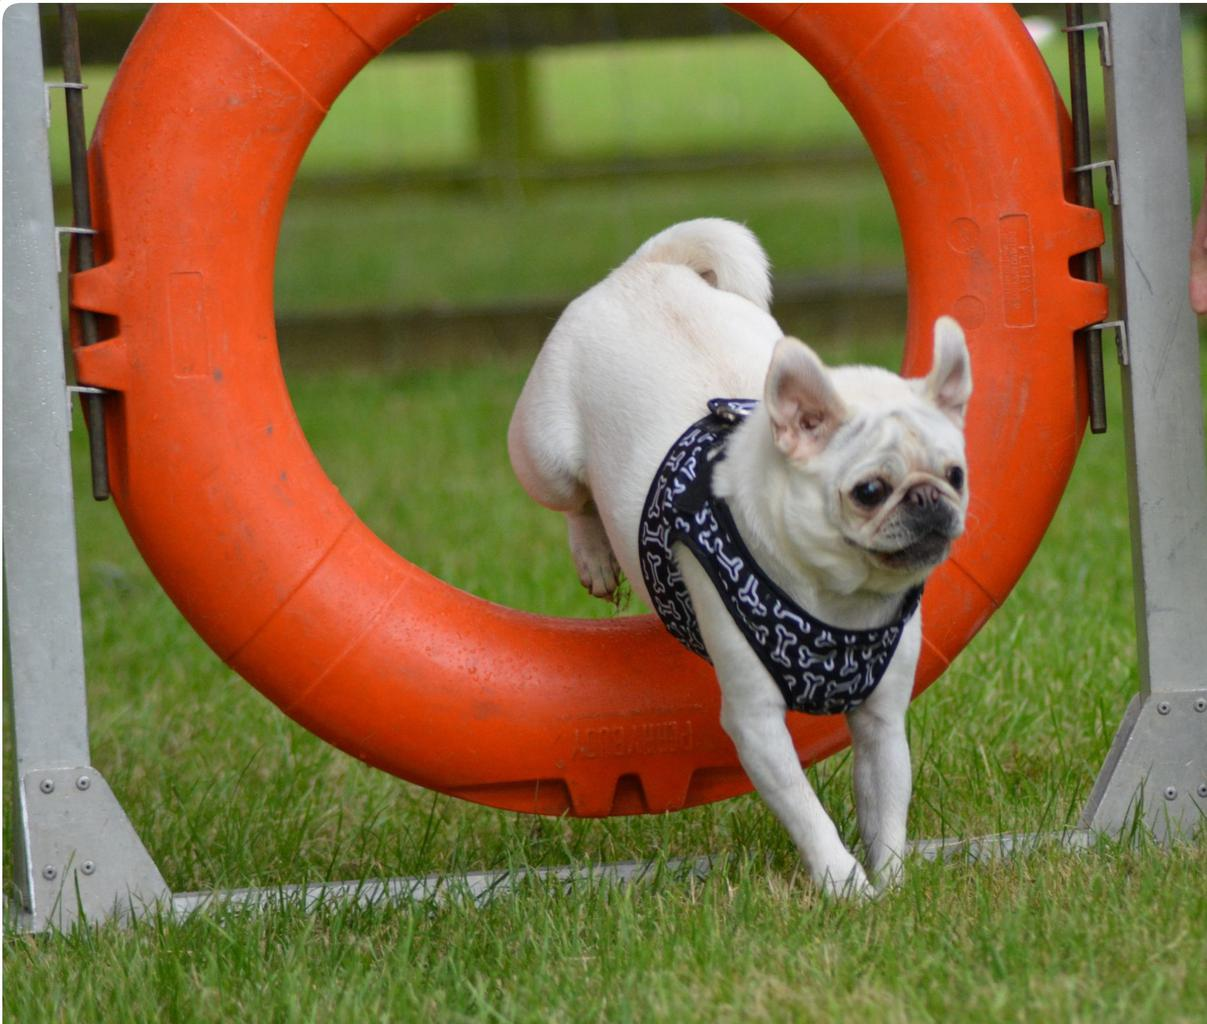 Staying fit and active is keeping Susannah Chalmers' Pugs happier and healthier. Tags: active dog agility dog fit dog Pug